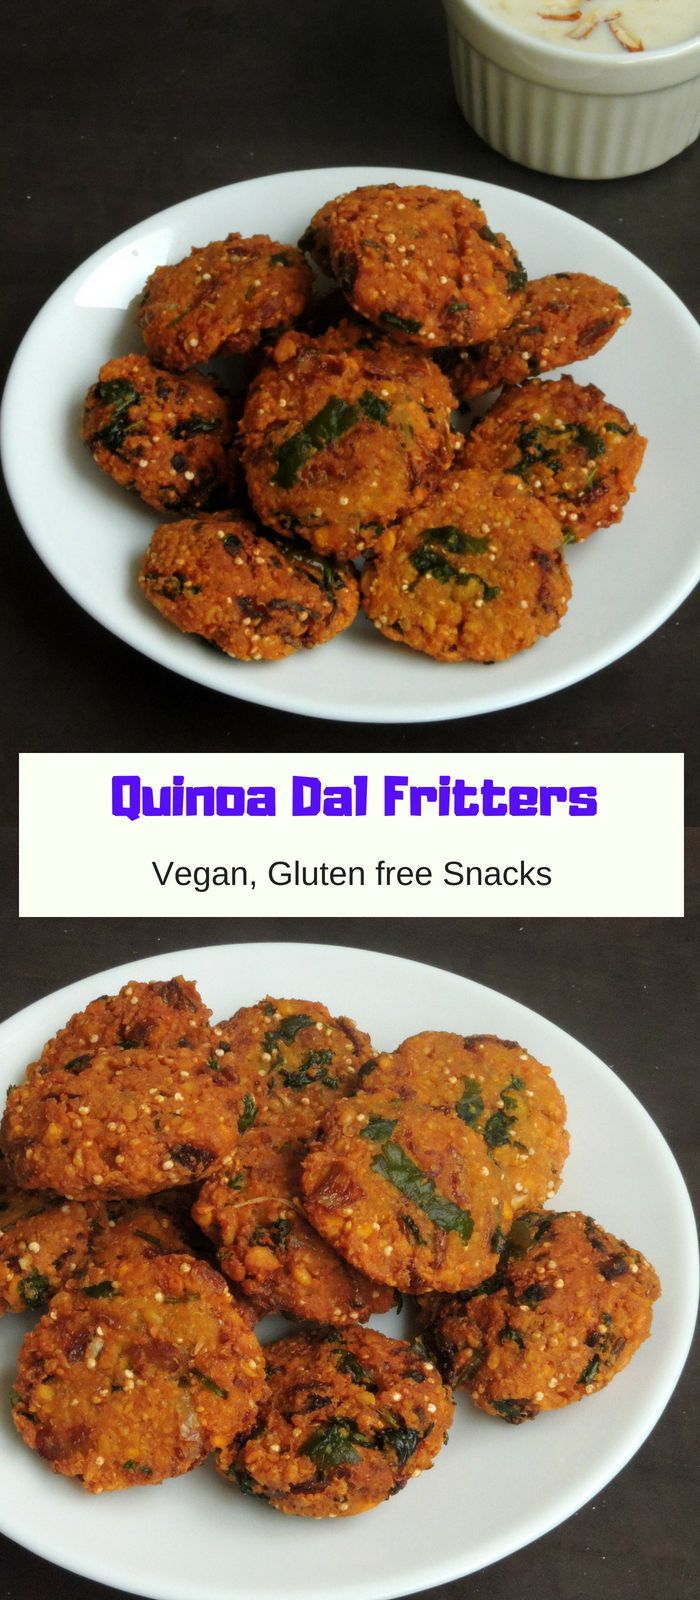 Quinoa Masal Vadai/Gluten Free Quinoa Dal Fritters #air fryer recipes vegetarian india #Dal #Free #Fritters #india vegetarian recipes #india vegetarian recipes indian dishes #indian curry recipes vegetarian india #indian food recipes vegetarian india #Indian Vegetarian Recipes #indian vegetarian recipes dinners india #Masal #Quinoa #VadaiGluten #veg recipes of india vegetarian #vegetarian recipes indian india